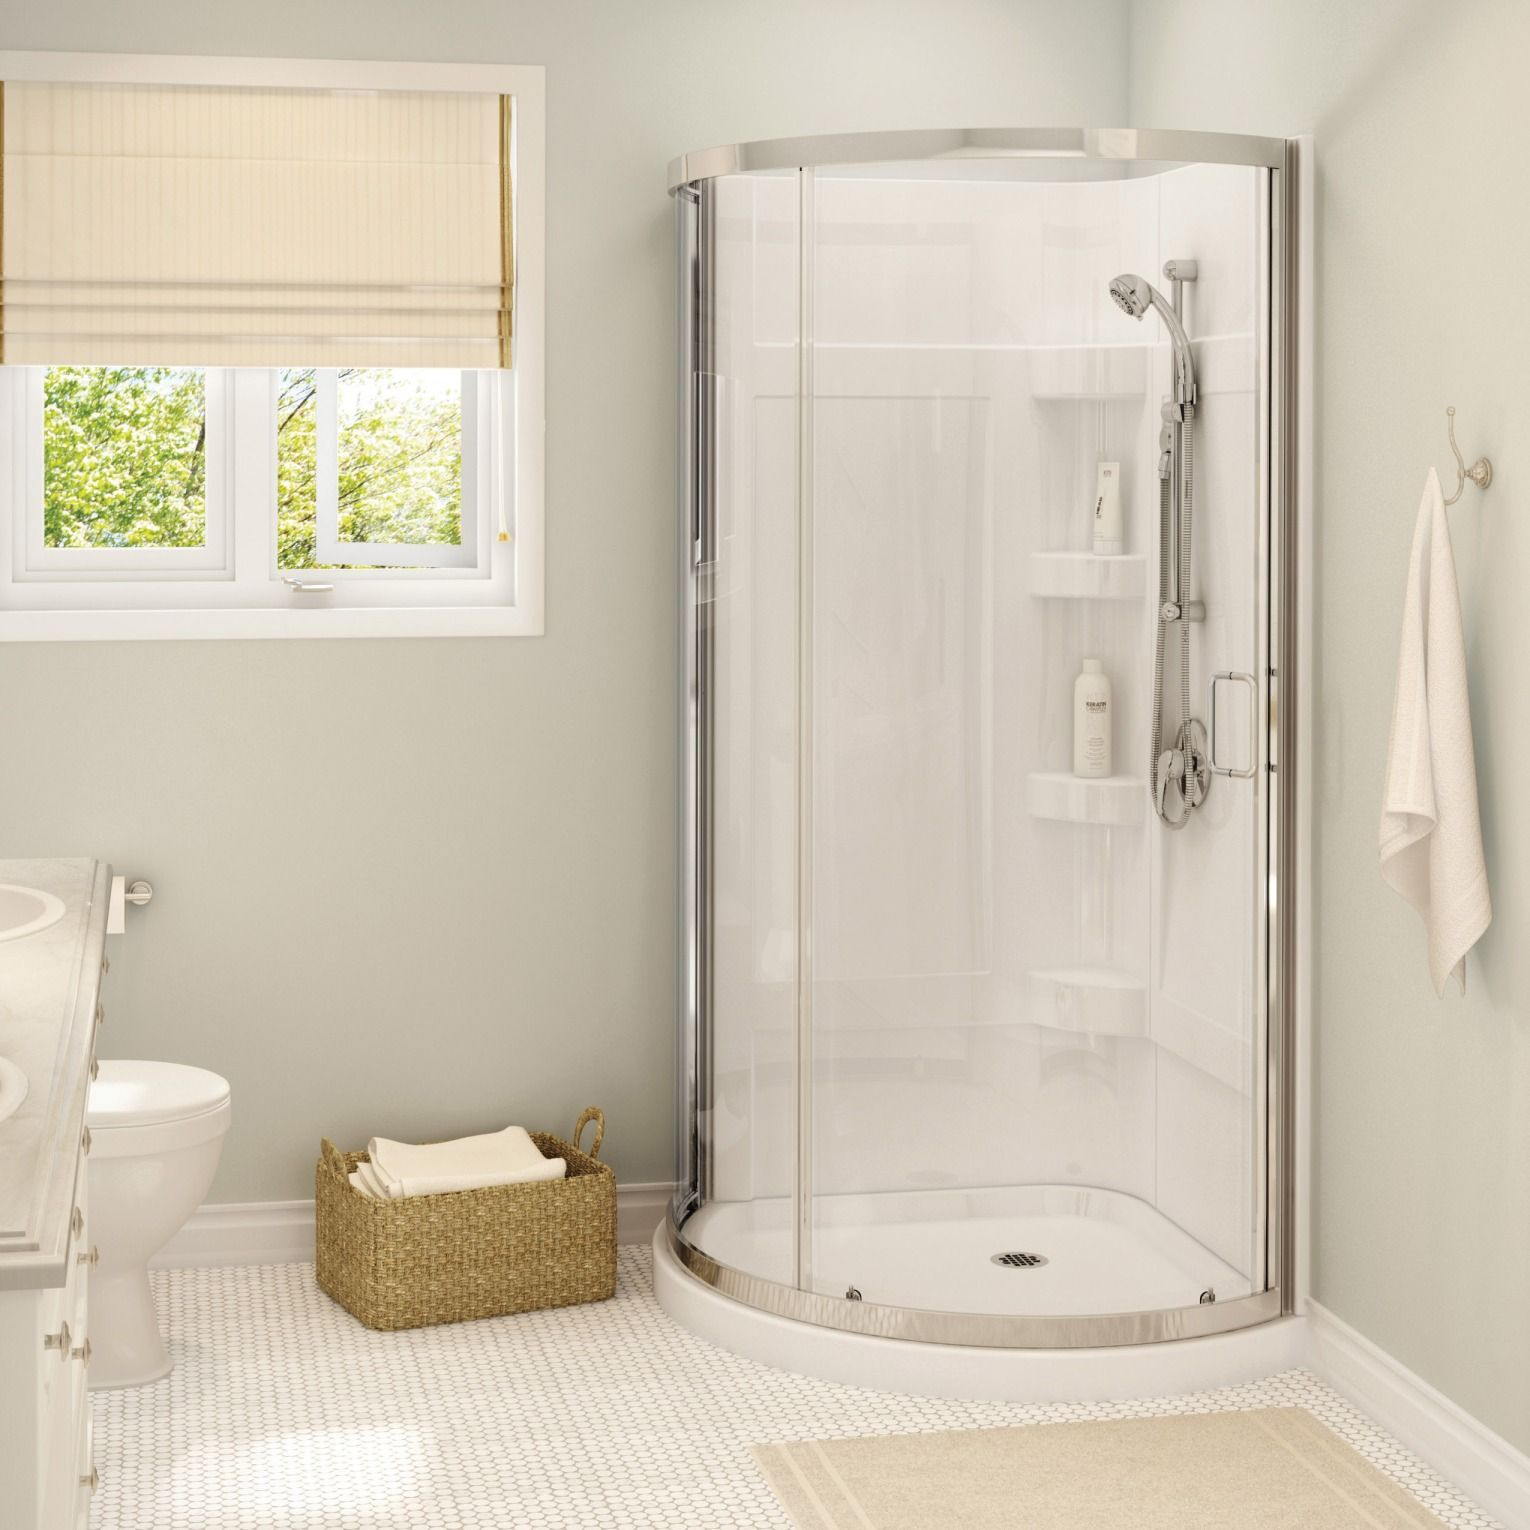 The Maax Cyrene Shower Kit Combines Simplicity And Elegance